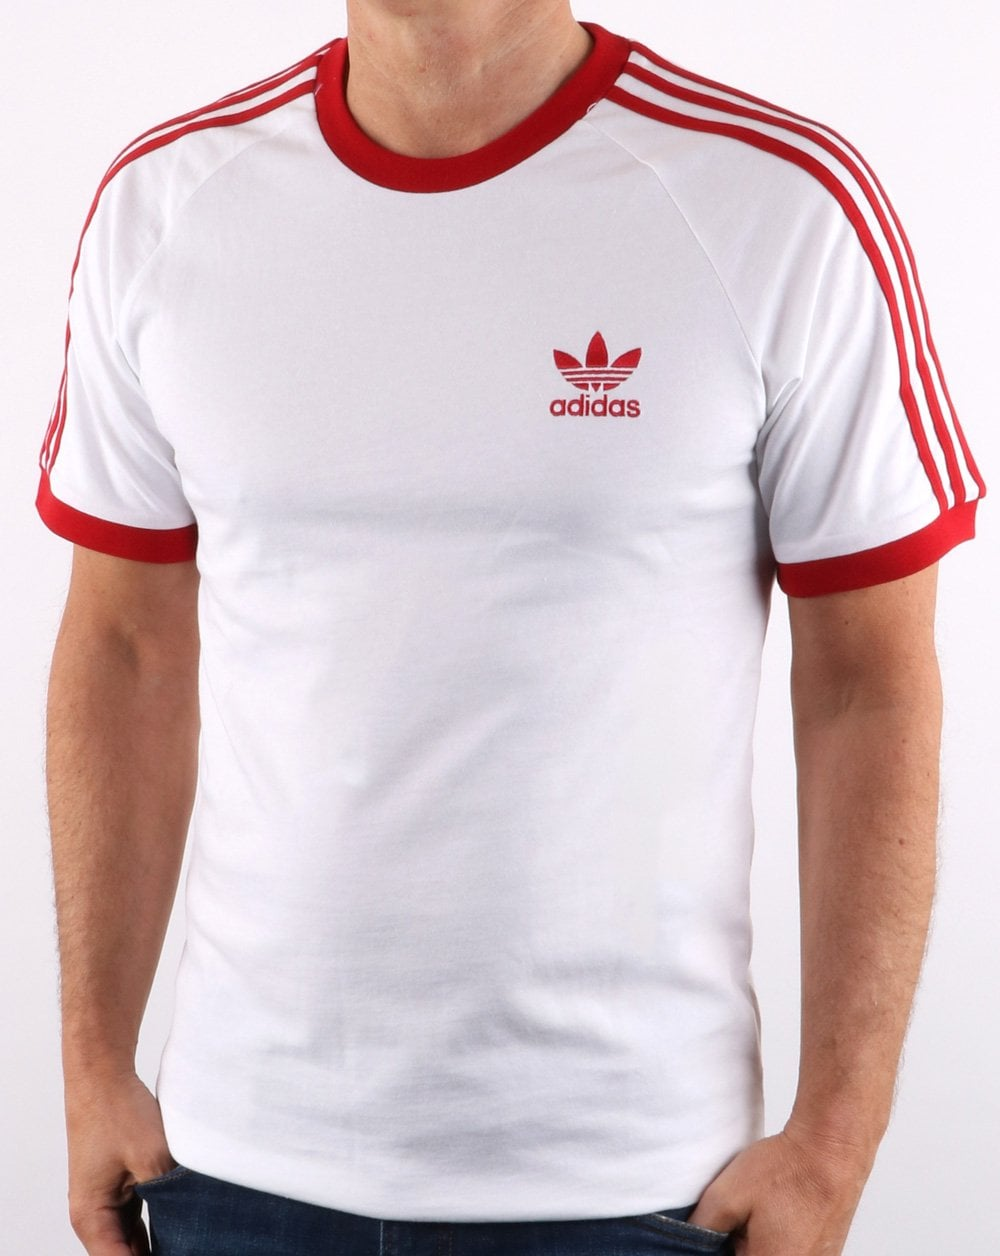 04f2e128b7c3a adidas Originals Adidas Originals Retro 3 Stripes T Shirt White/ Red